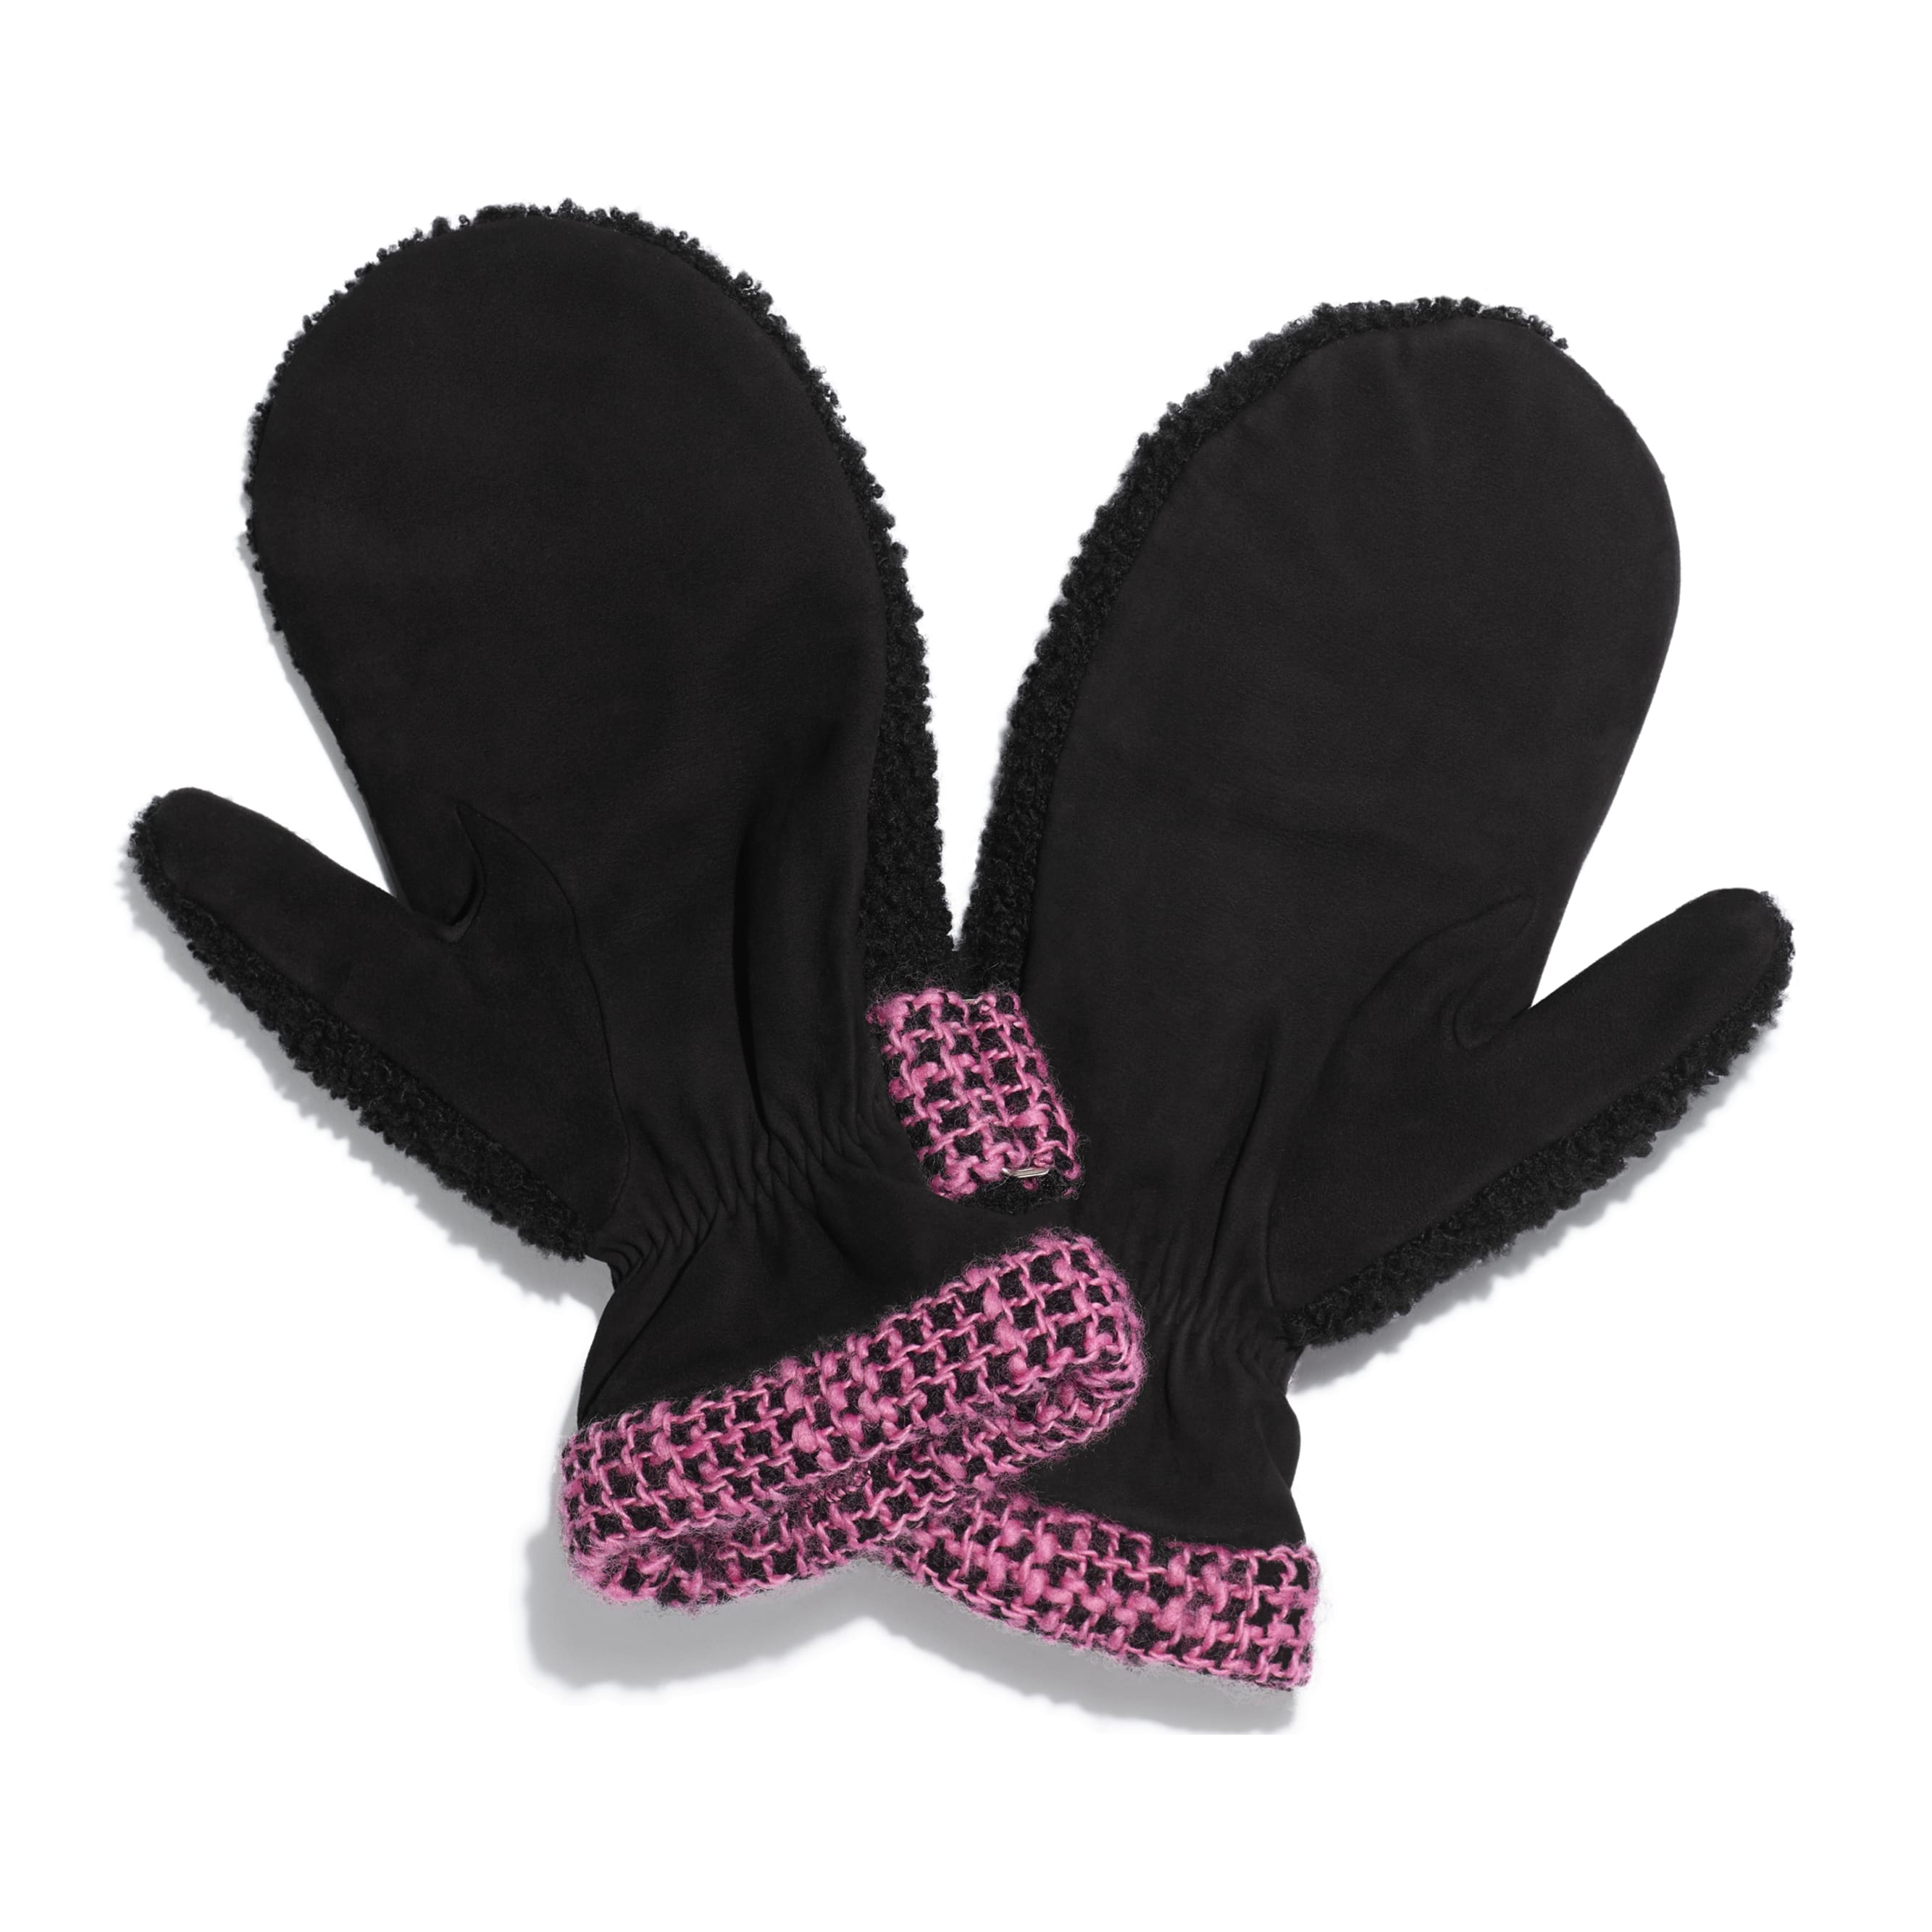 Mittens - Black & Pink - Shearling & Tweed - Alternative view - see standard sized version